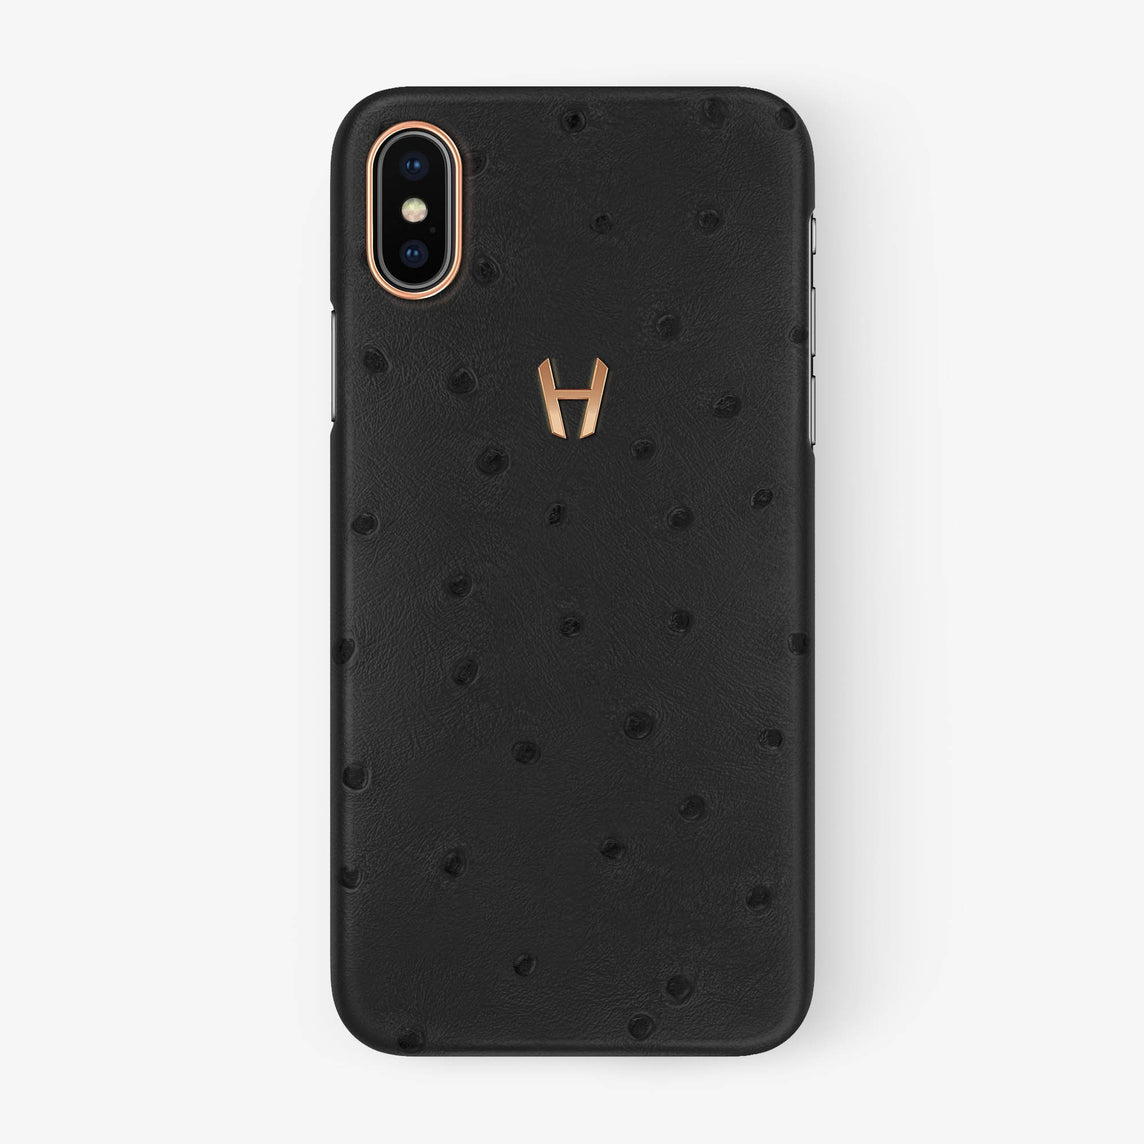 Anthracite Ostrich iPhone Case for iPhone X finishing rose gold - Hadoro Luxury Cases